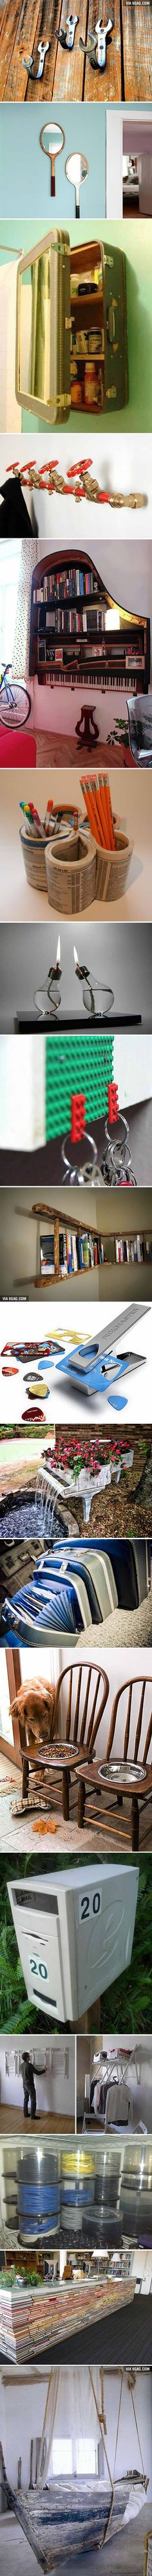 18 Incredible Things You Can Make From Old Stuff